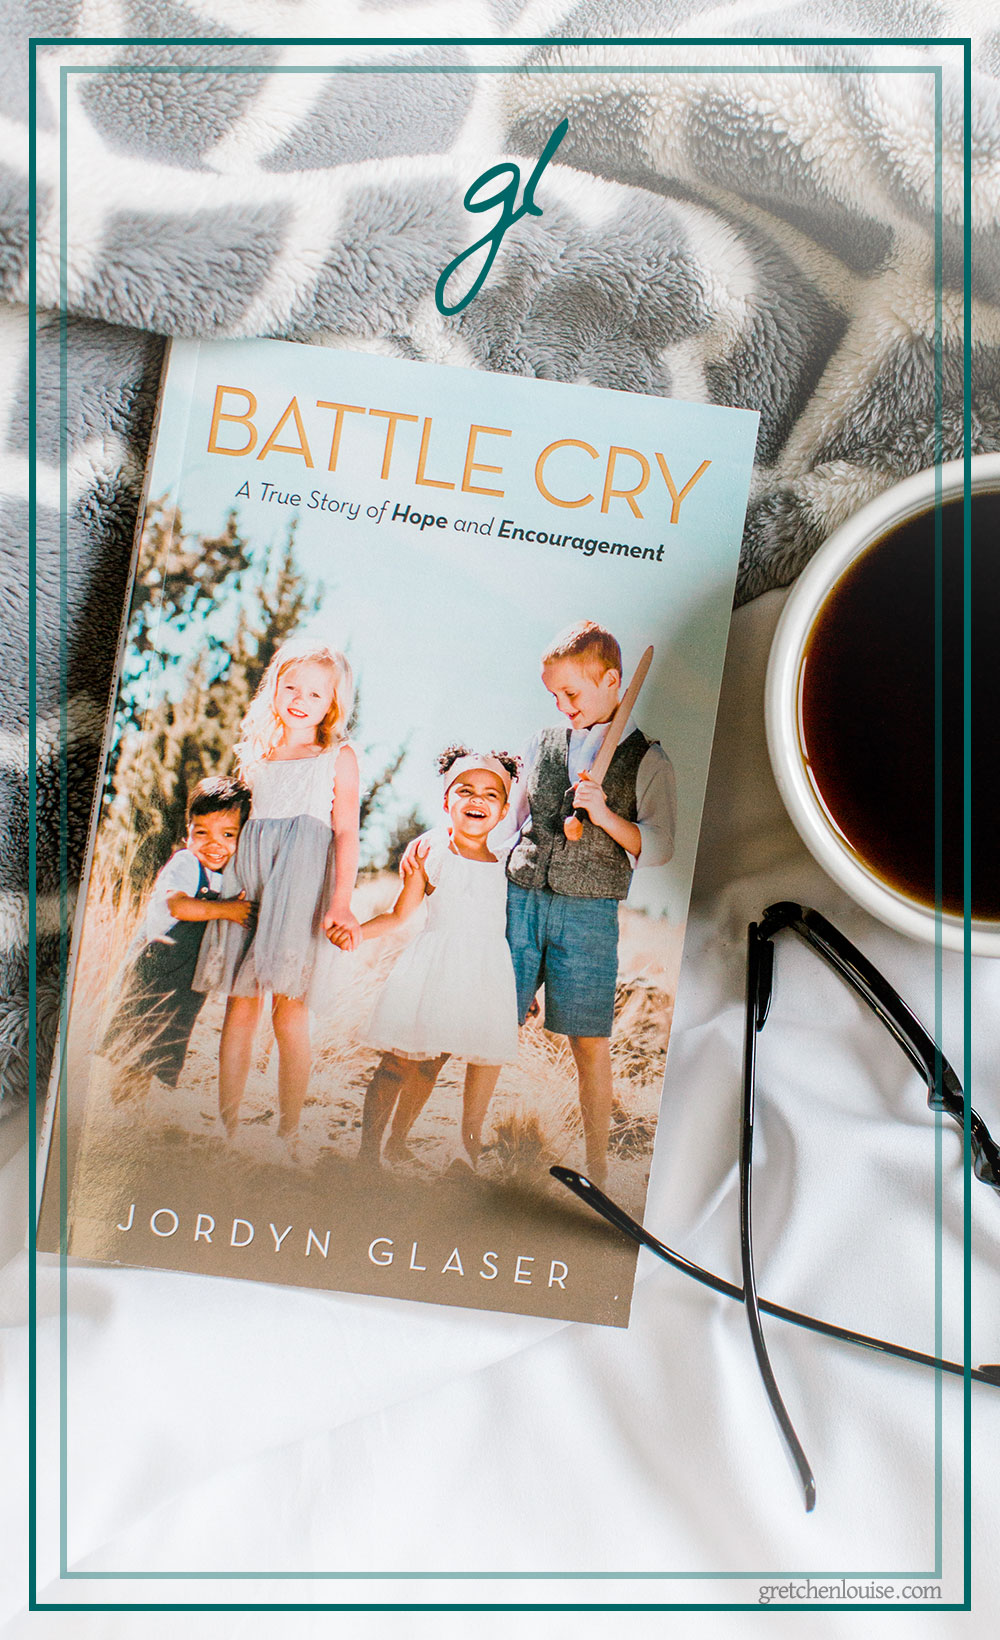 If you've enjoyed the story of Kayla Aimee's micro-preemie in Anchored or the adoption memoirs In a Sun-Scorched Land by Jennifer Ebenhack and Counting Grains of Sand by Natasha Metzler, you'll want to read Jordyn Glaser's Battle Cry.